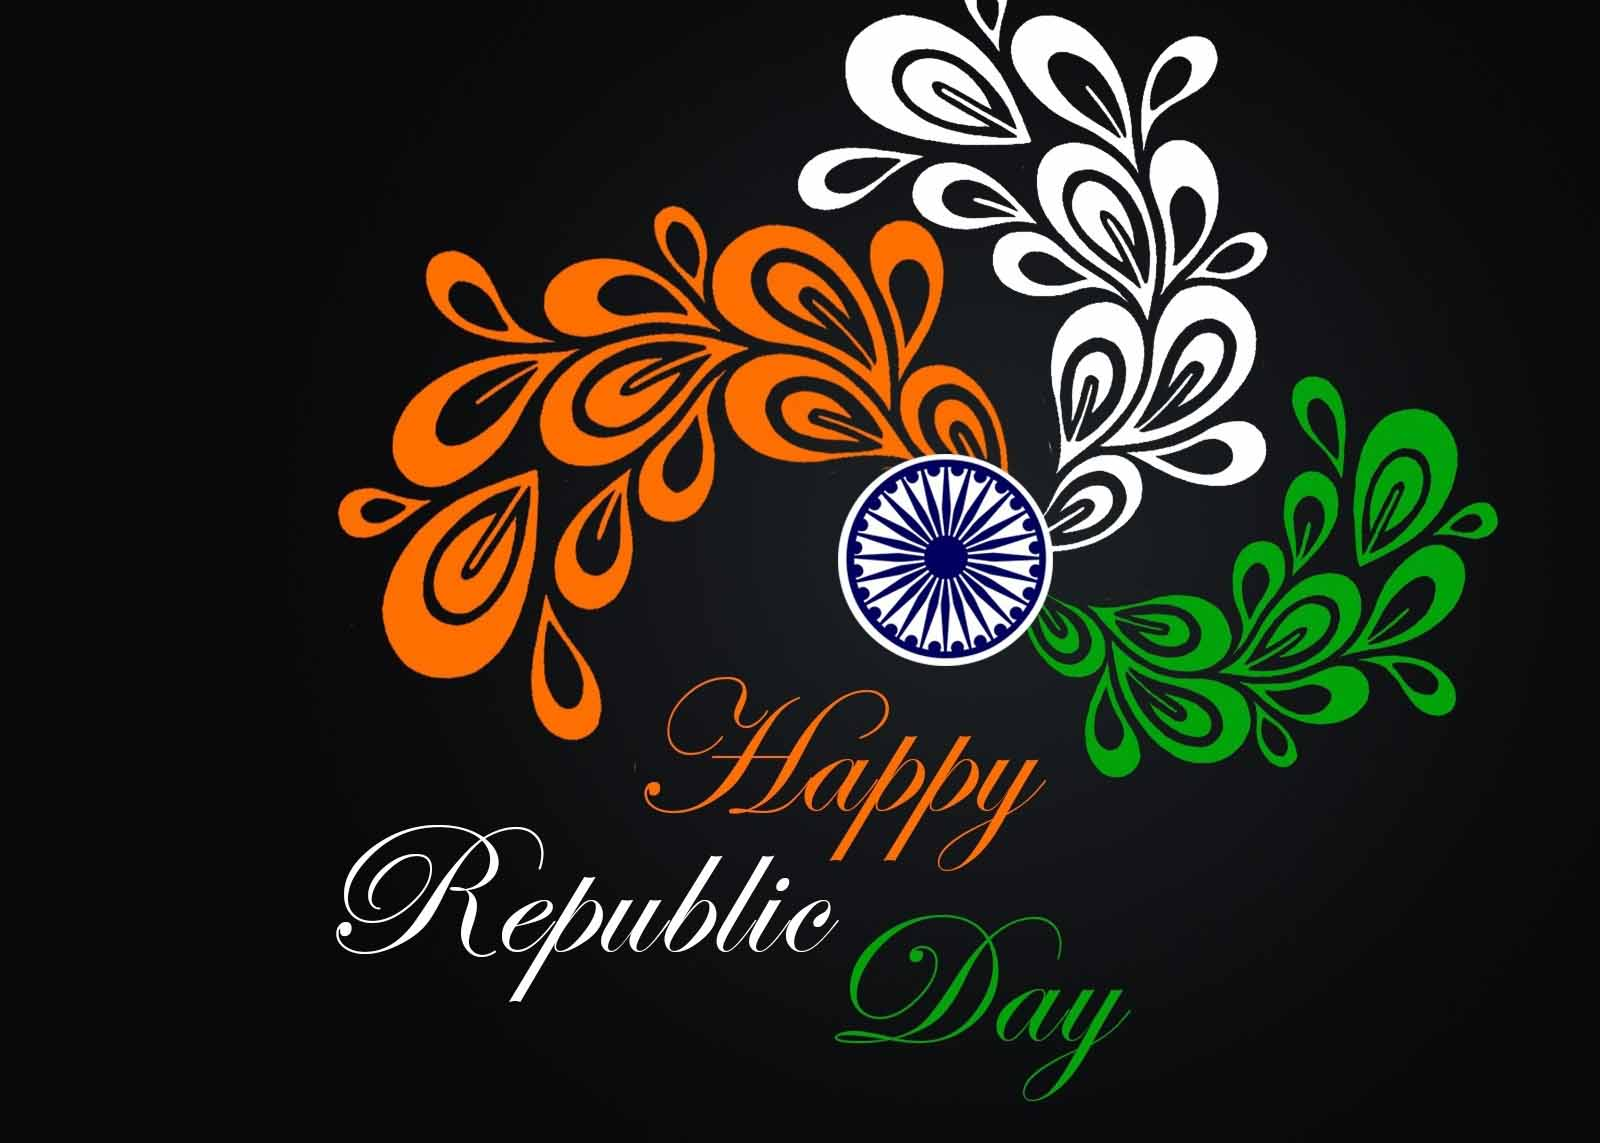 26 jan] republic day images for whatsapp dp, profile wallpapers